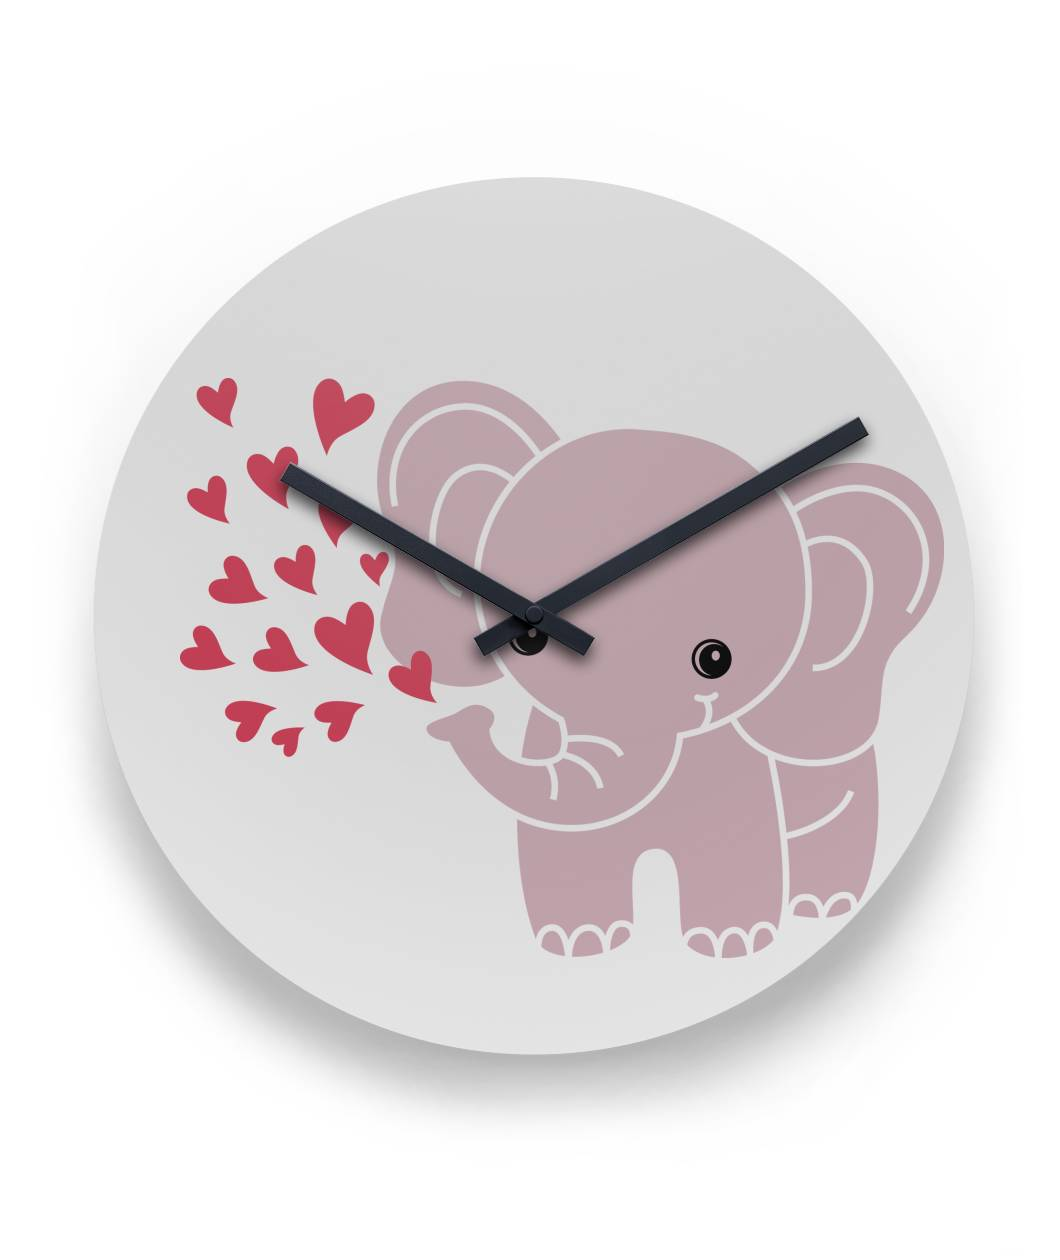 "Baby Elephant Wall Clock with Hearts 11"" Round Wall Clock"